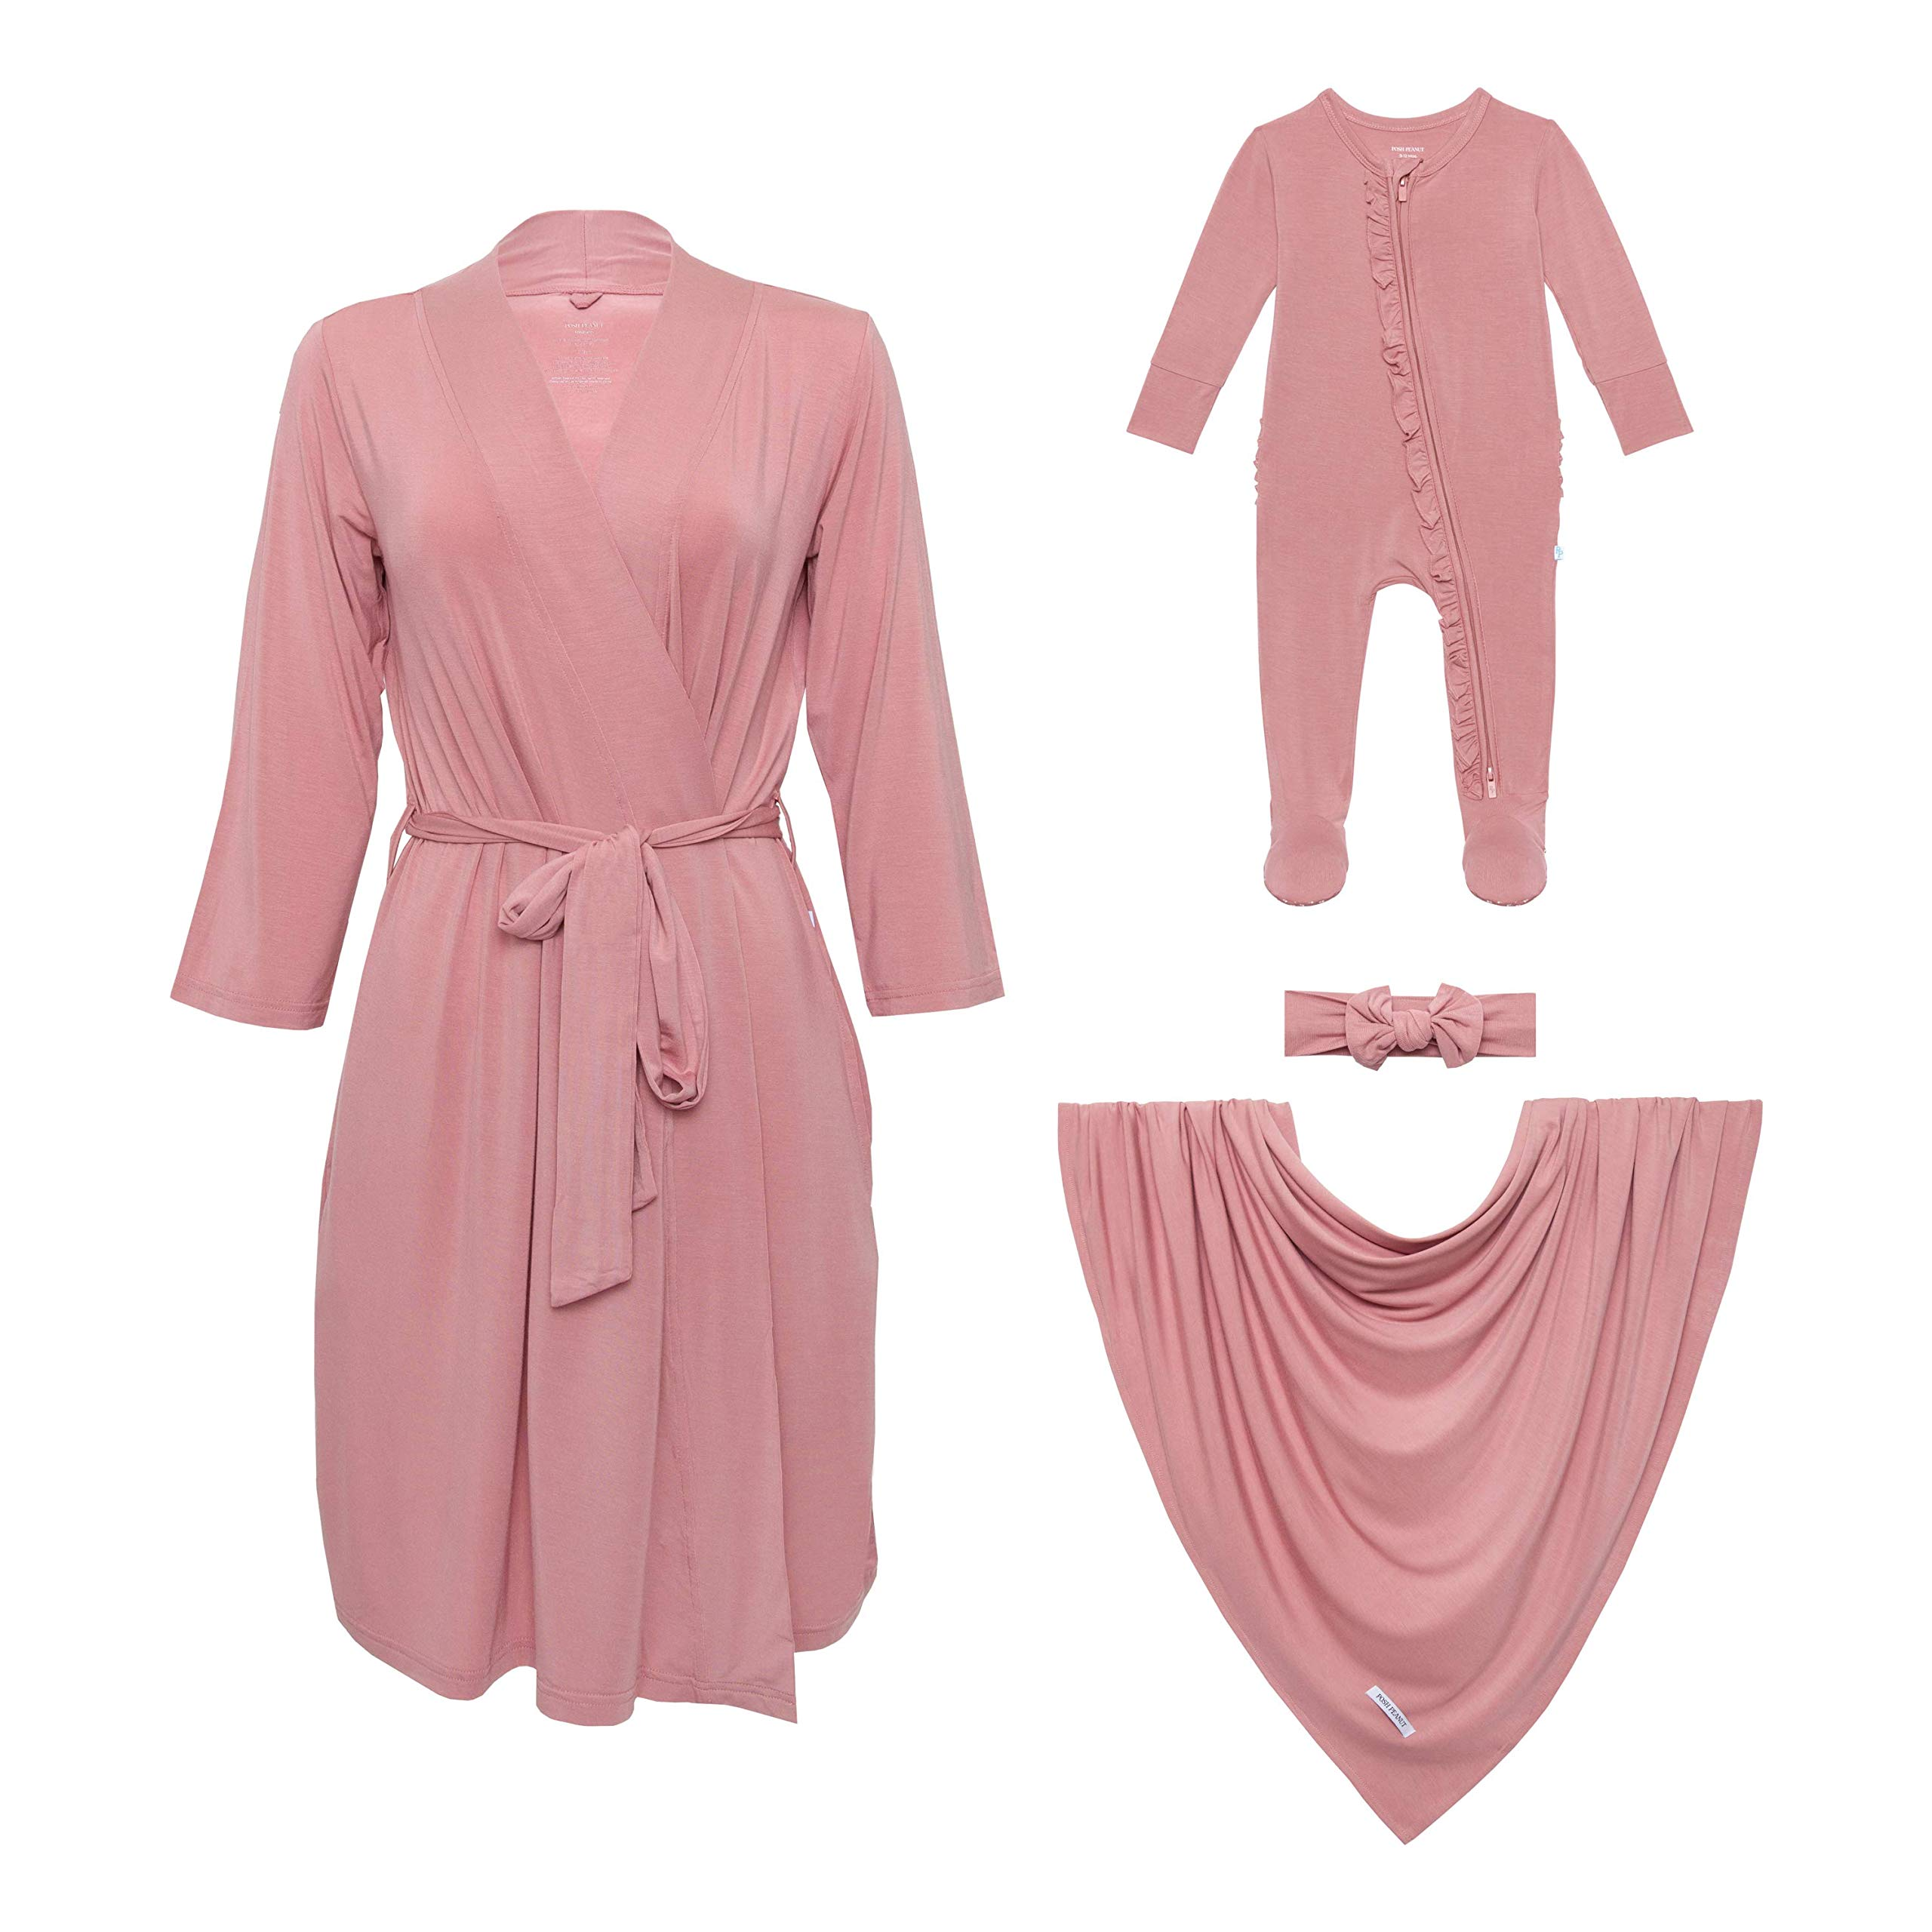 Posh Peanut Maternity Robe with Matching Baby Swaddle Set and Newborn Footie Zippered One Piece Set - Premium Knit Viscose from Bamboo - 3pc Baby Newborn Gift Set (Dusty Rose - X-Large)